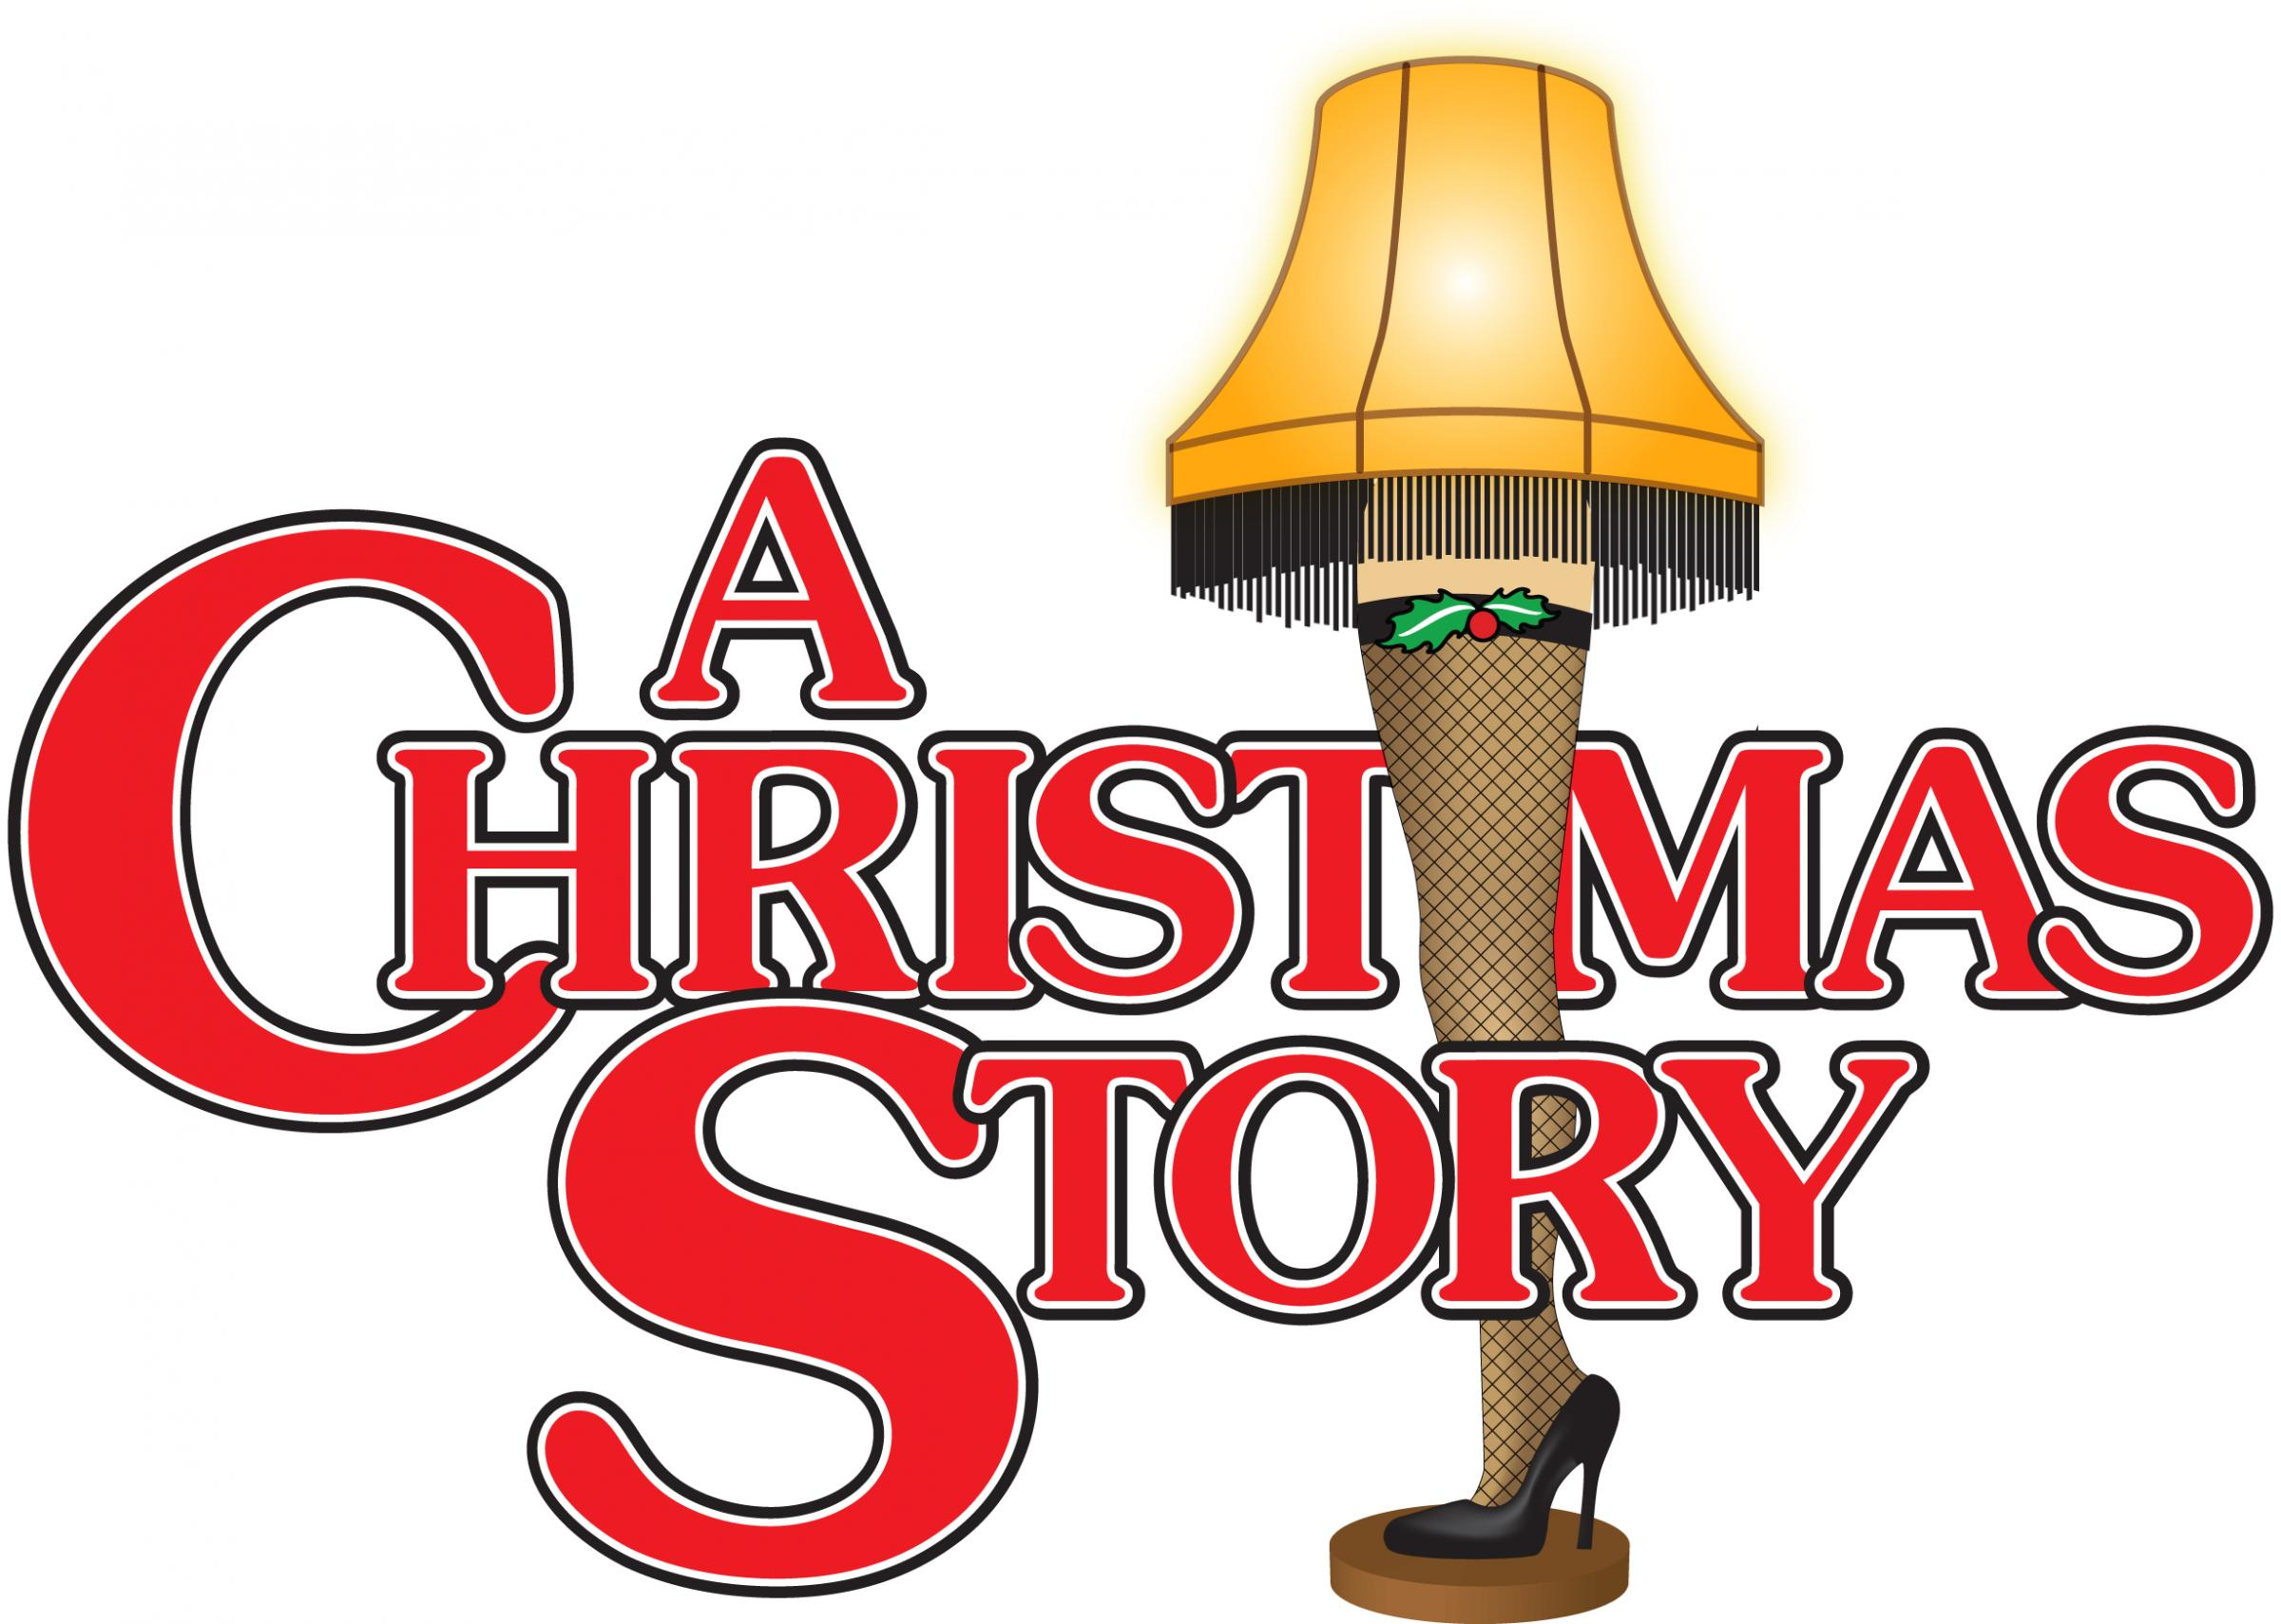 See 'A Christmas Story' at Zach Theater | KUT